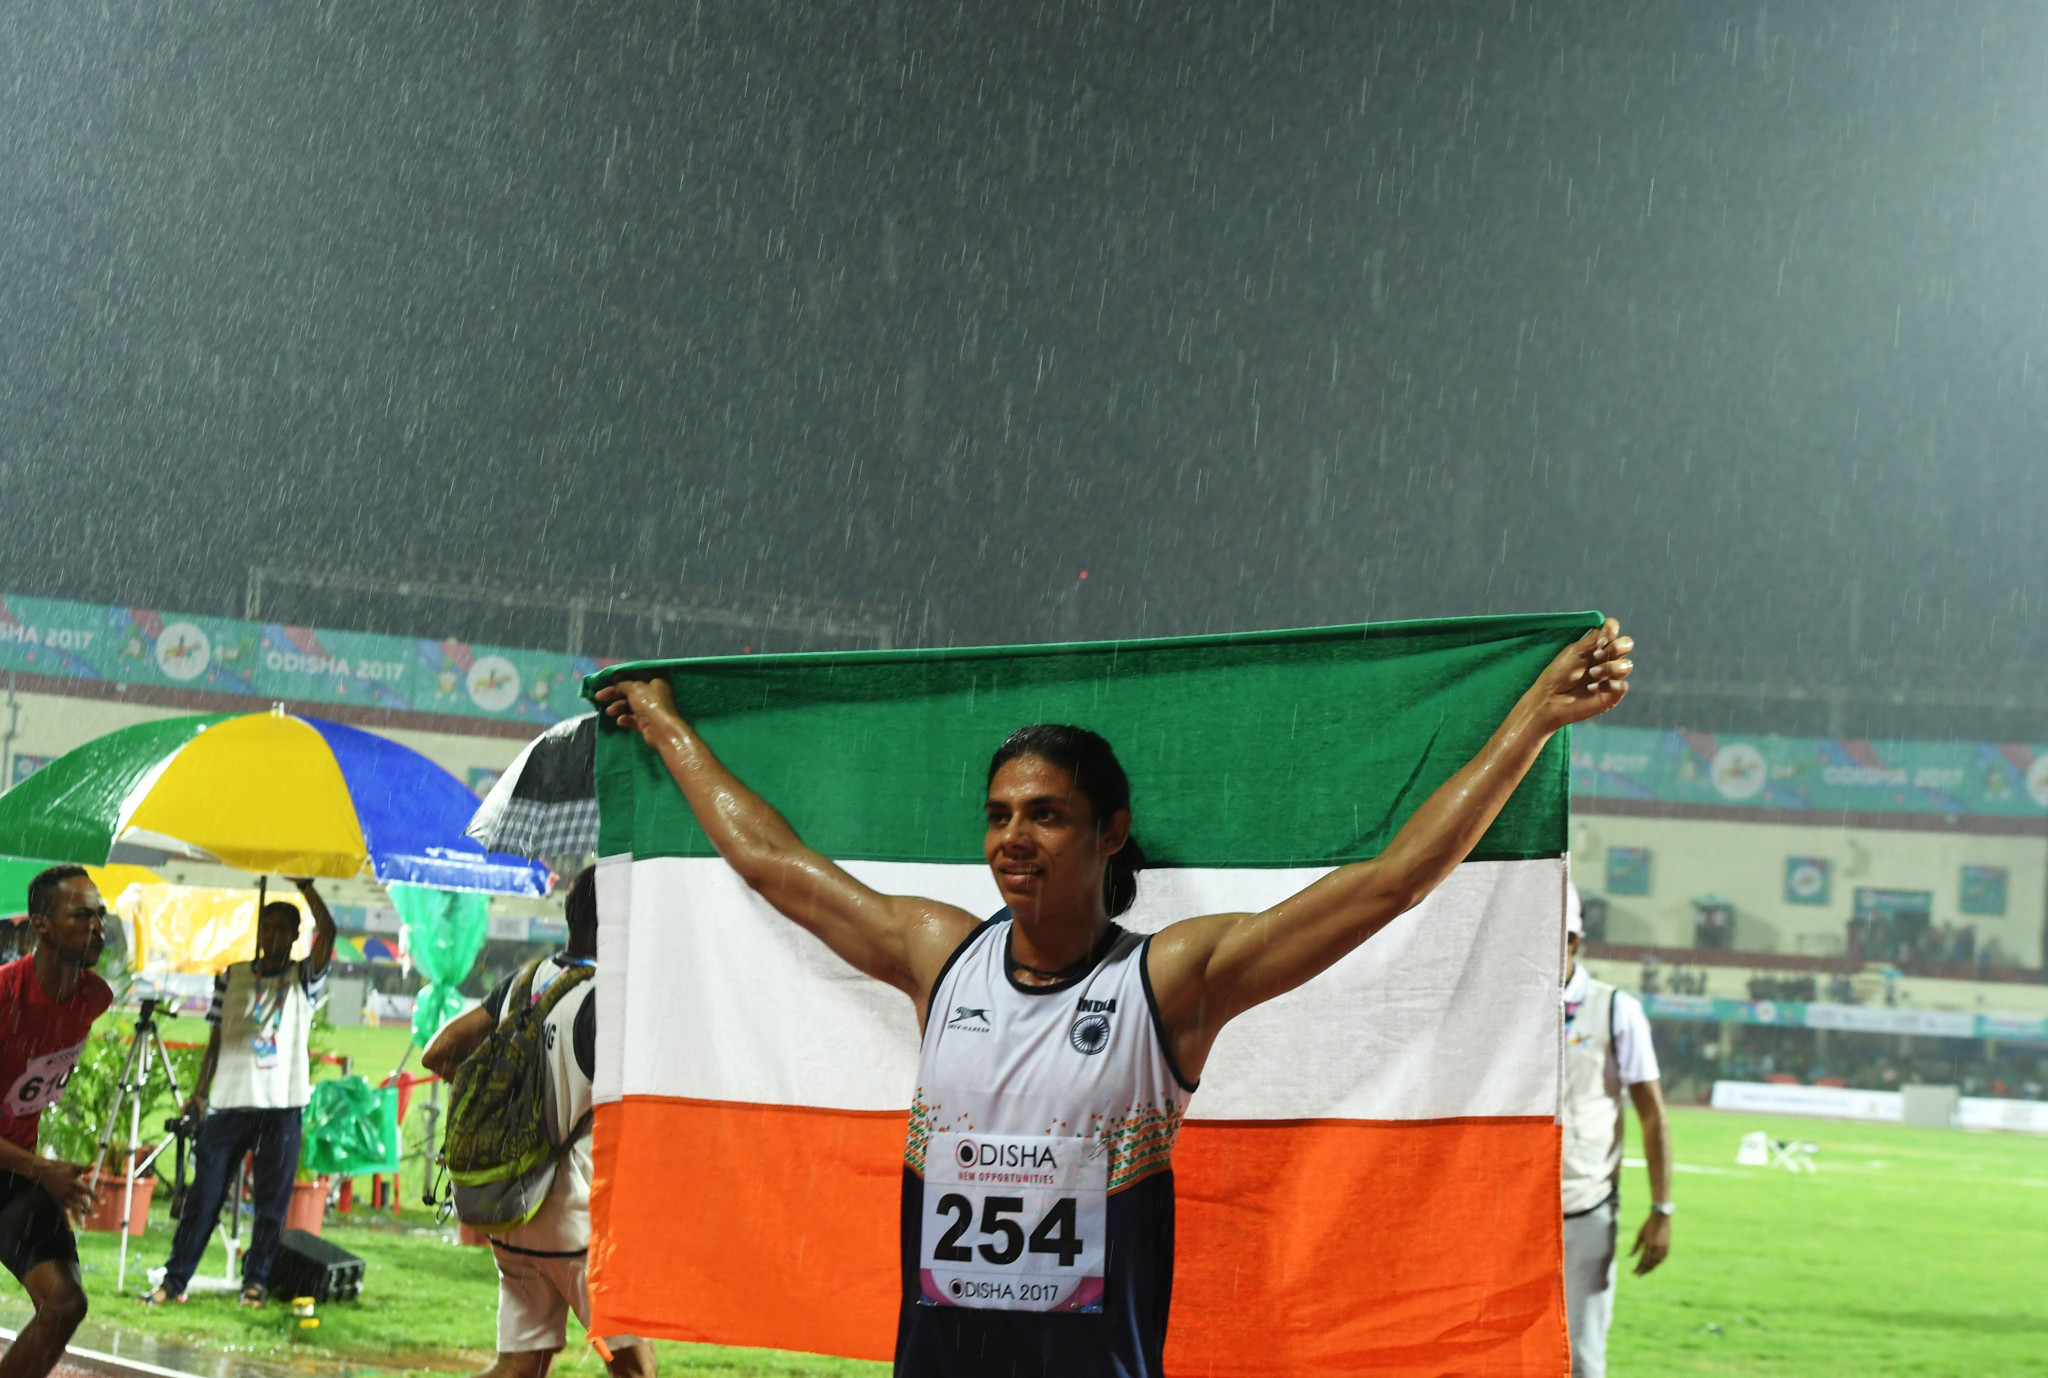 India's Nirmala Sheoran celebrates after winning the gold medal in the 400 metres at the 2017 Asian Championships in Bhubaneshwar - a title she will now be stripped ©Getty Images